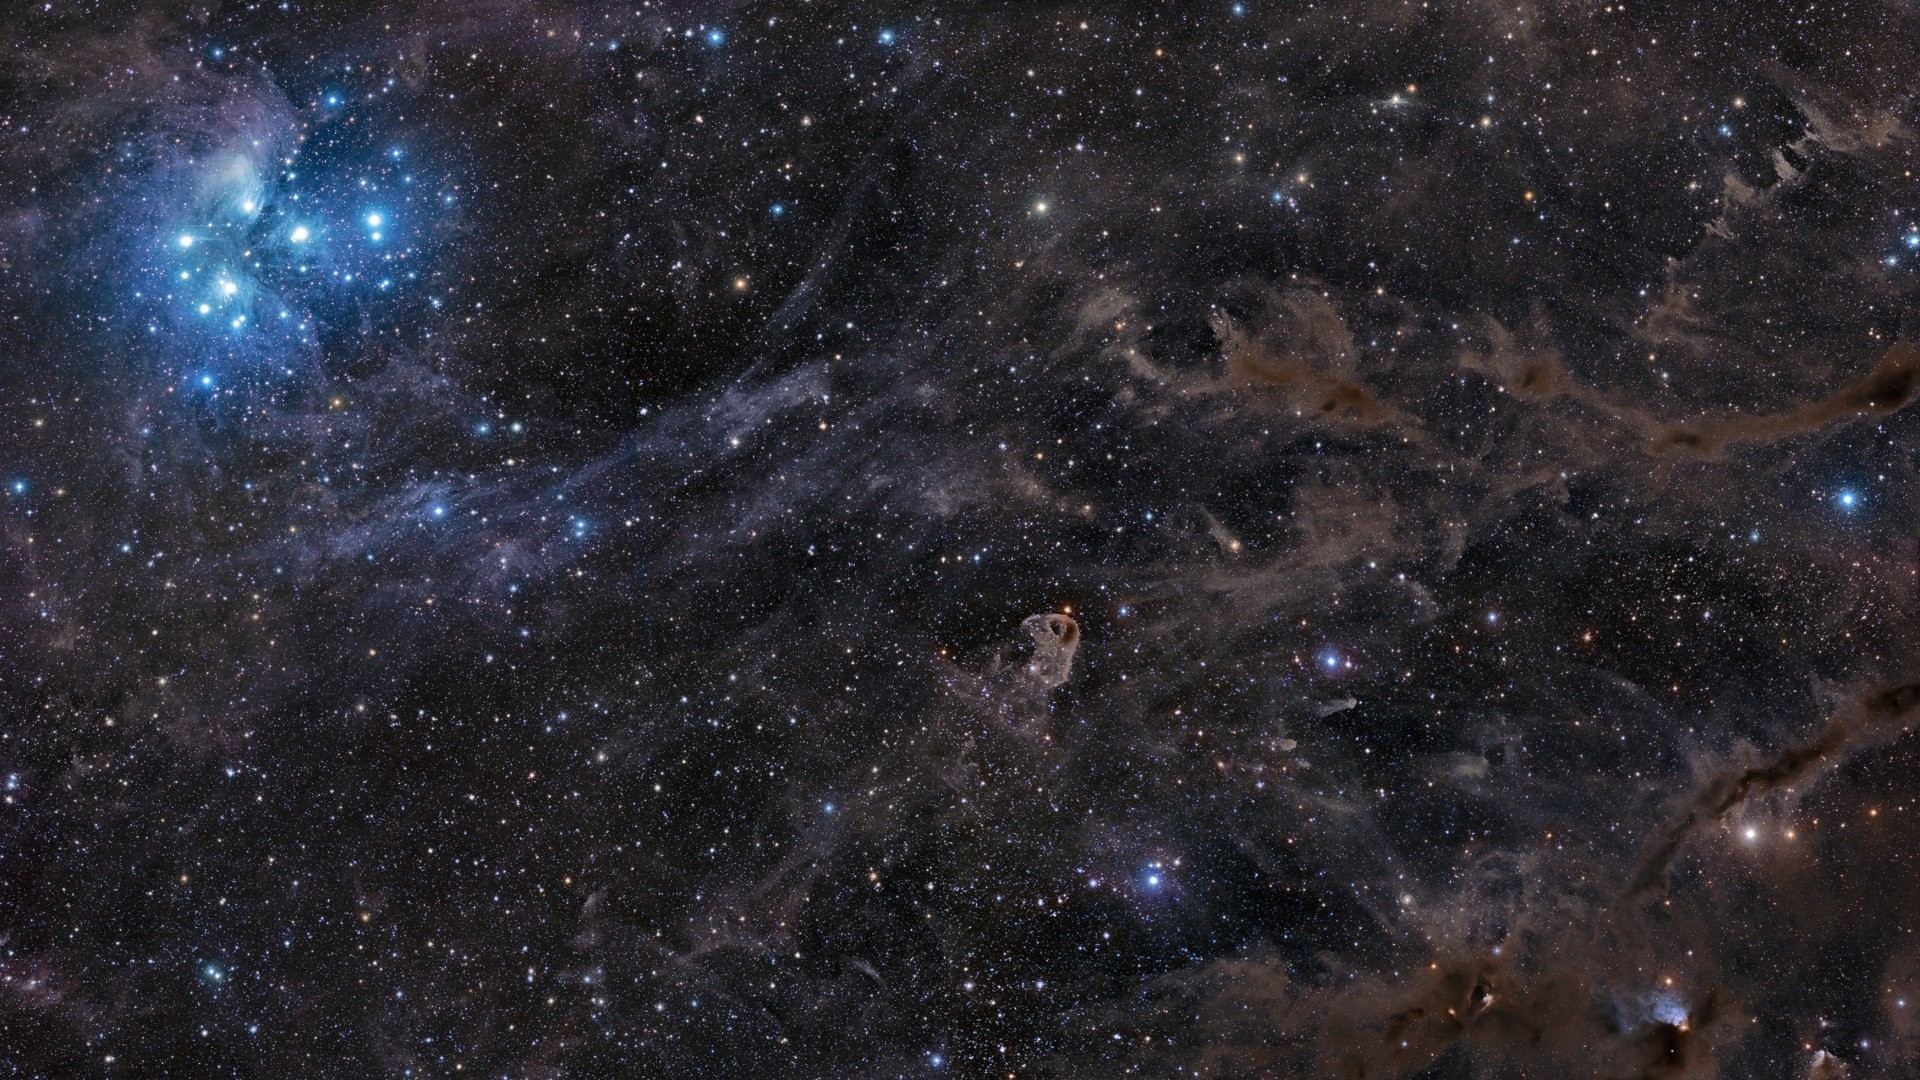 deep space hd wallpaper 1366x768 - photo #33